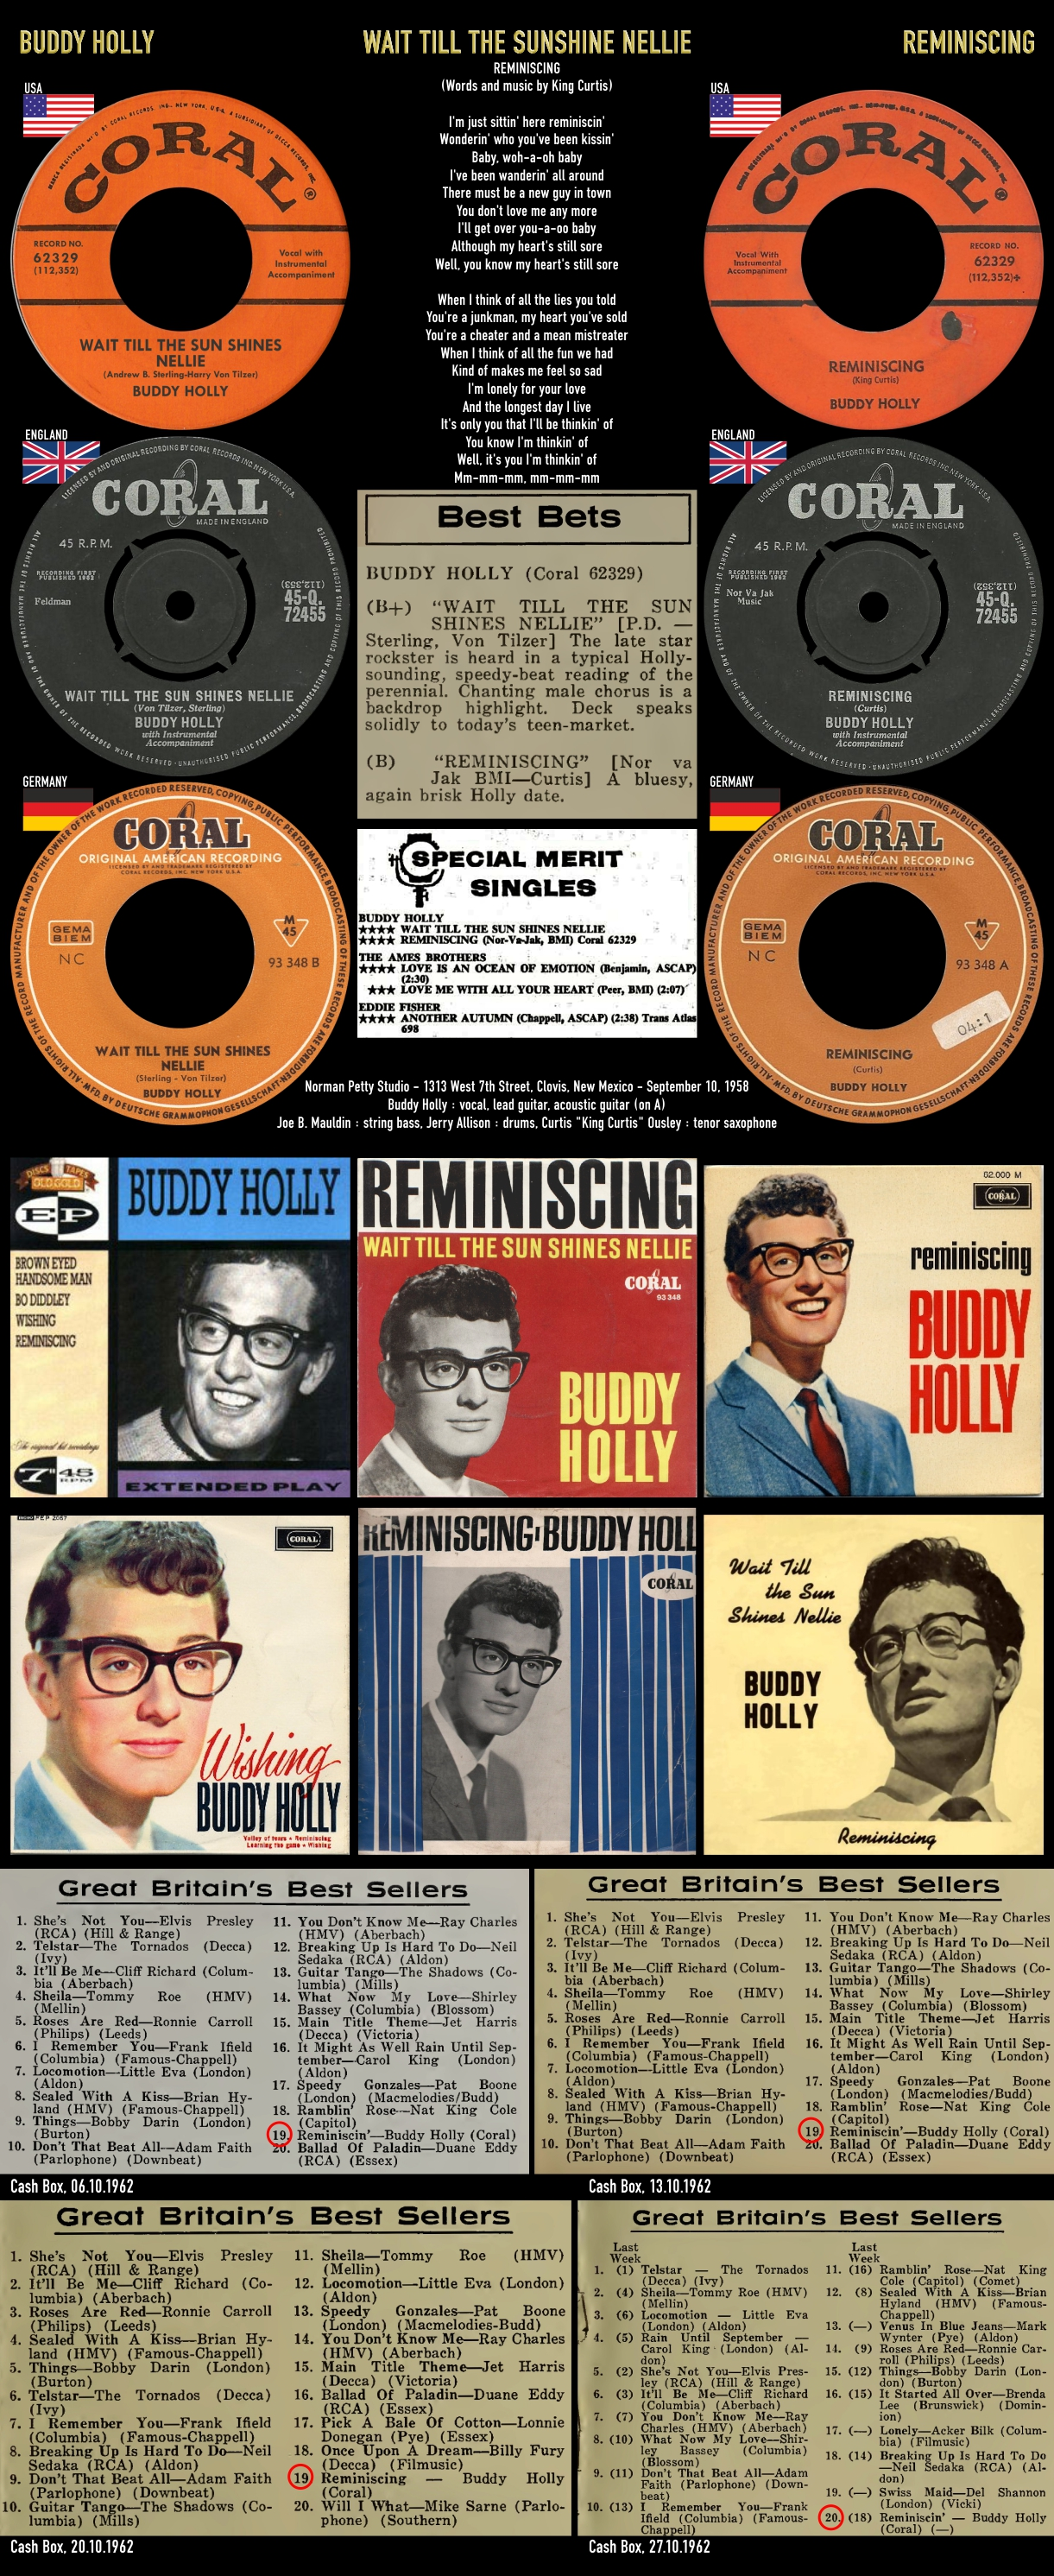 620915_Buddy Holly_Reminiscing_Wait Till The Sunshine Nellie